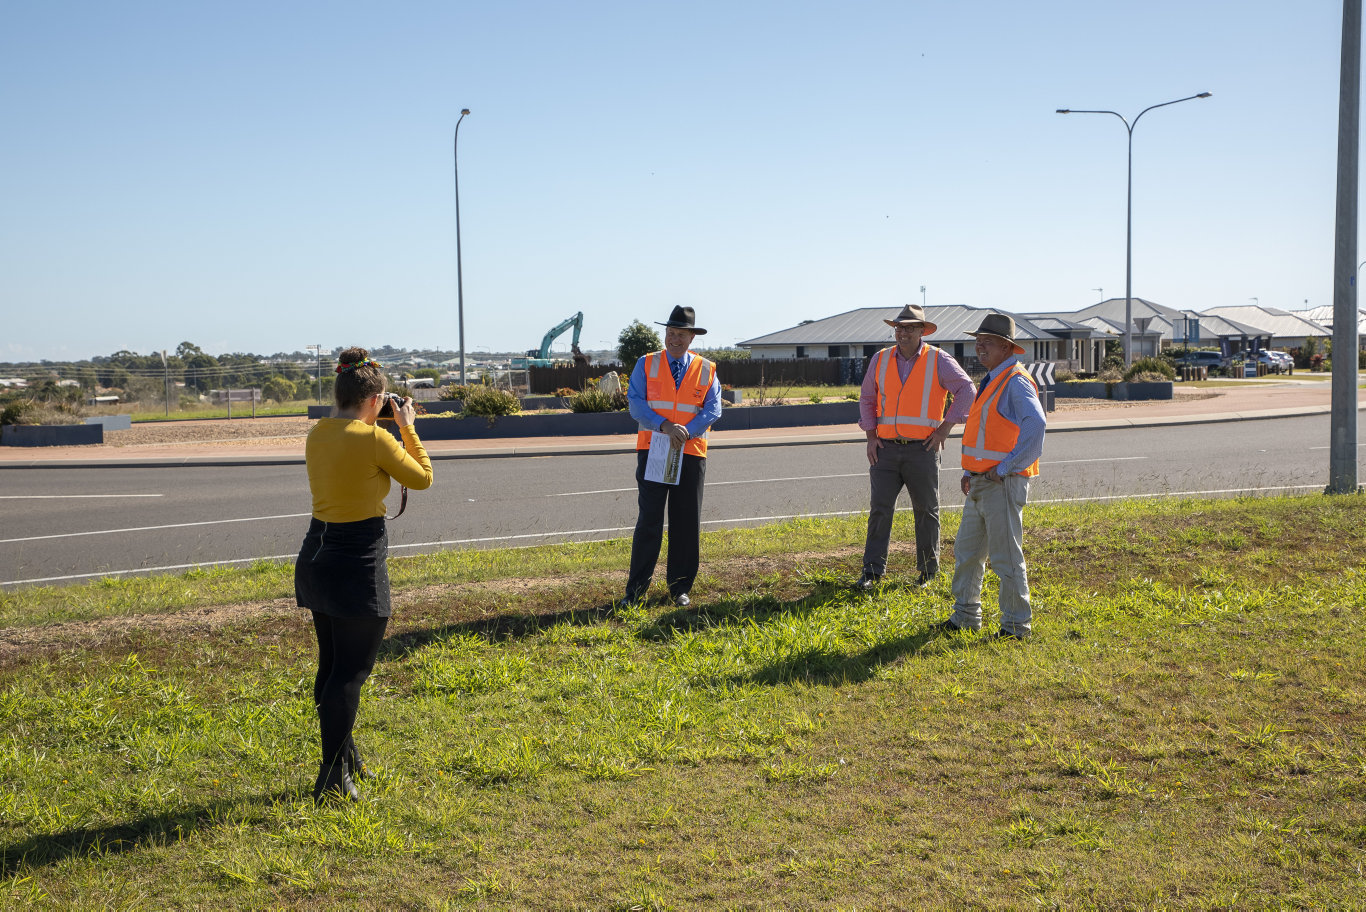 Chronicle journalist Jessica Cook covering a story on a long-awaited road upgrade.